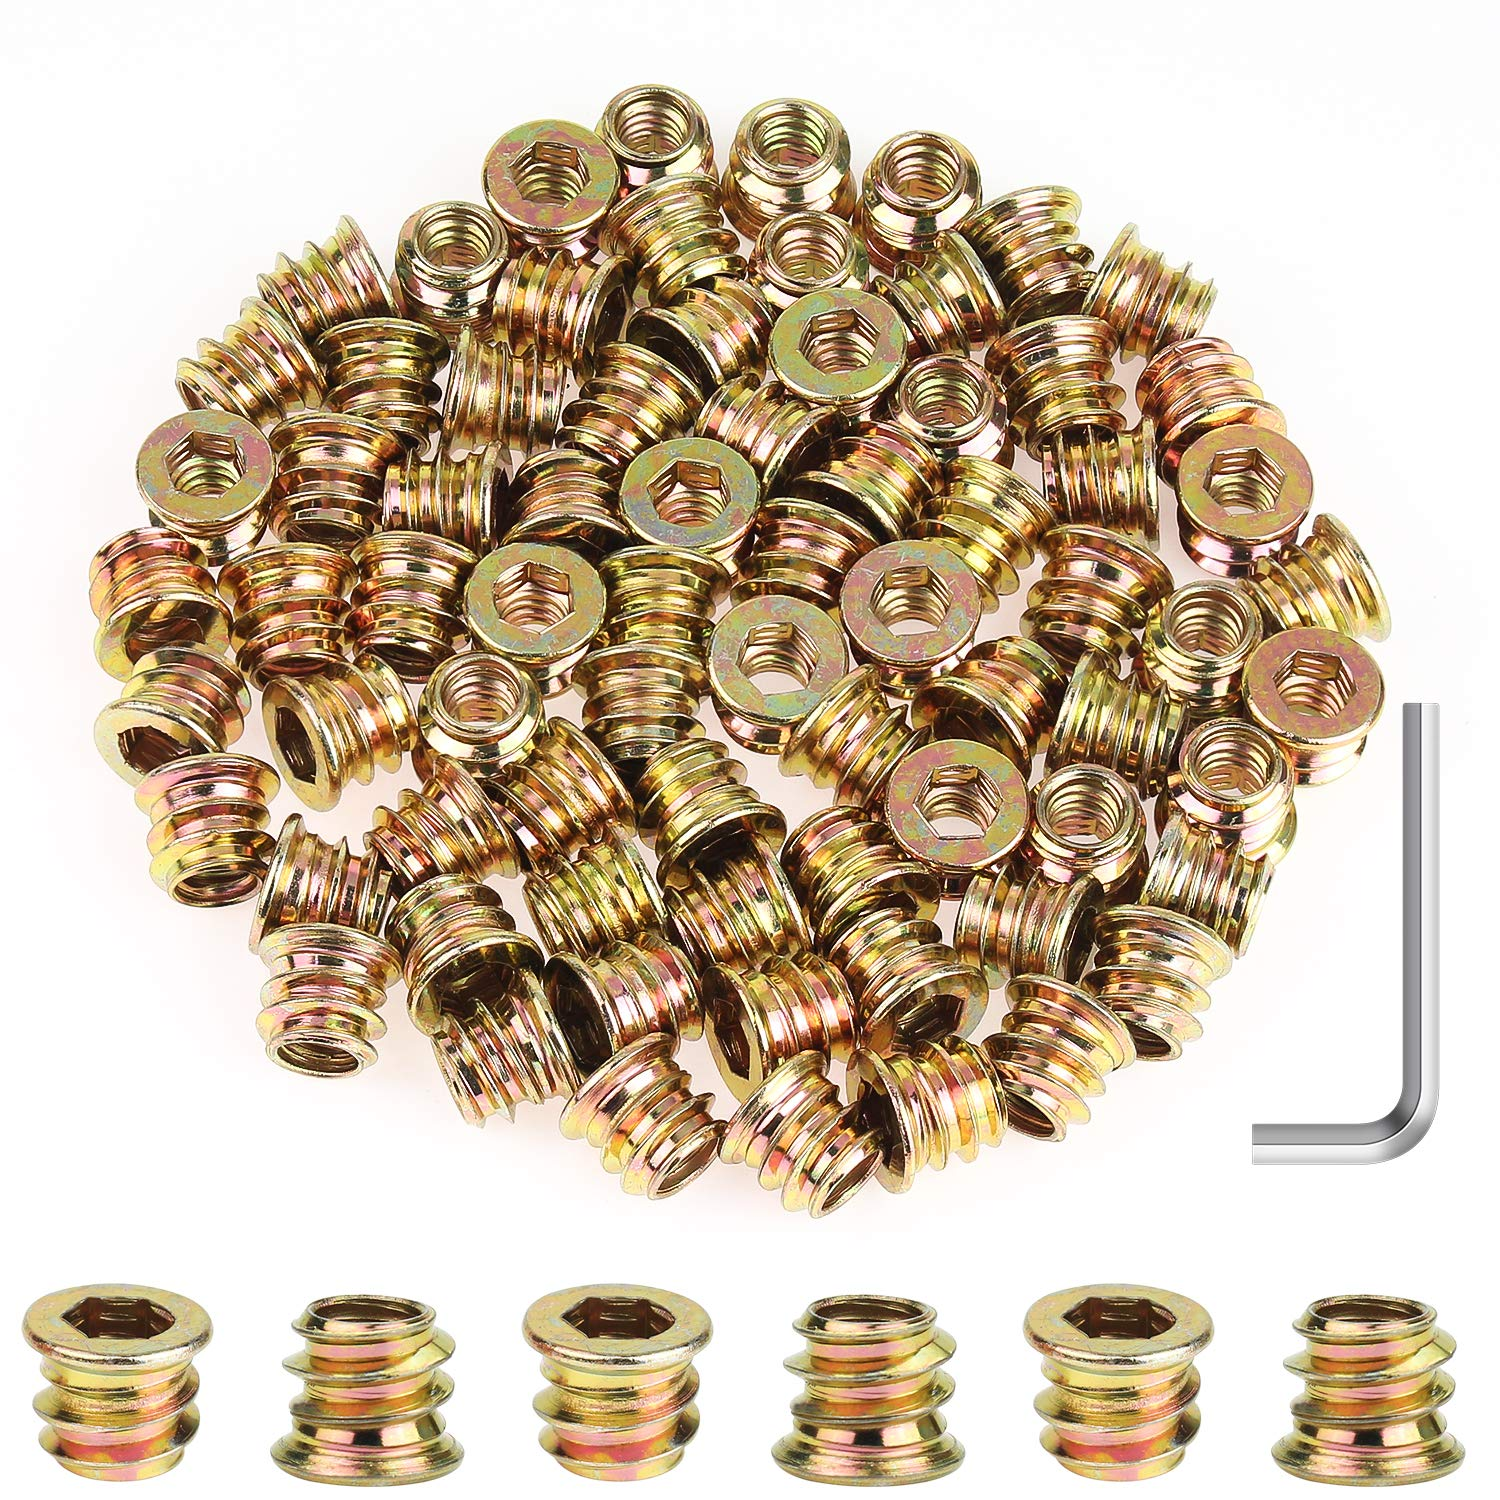 """Powlankou 90 Pieces 1/4""""-20 x 10mm Furniture Insert Nut, Hex Socket Threaded Insert Nuts with a Hex Wrench"""